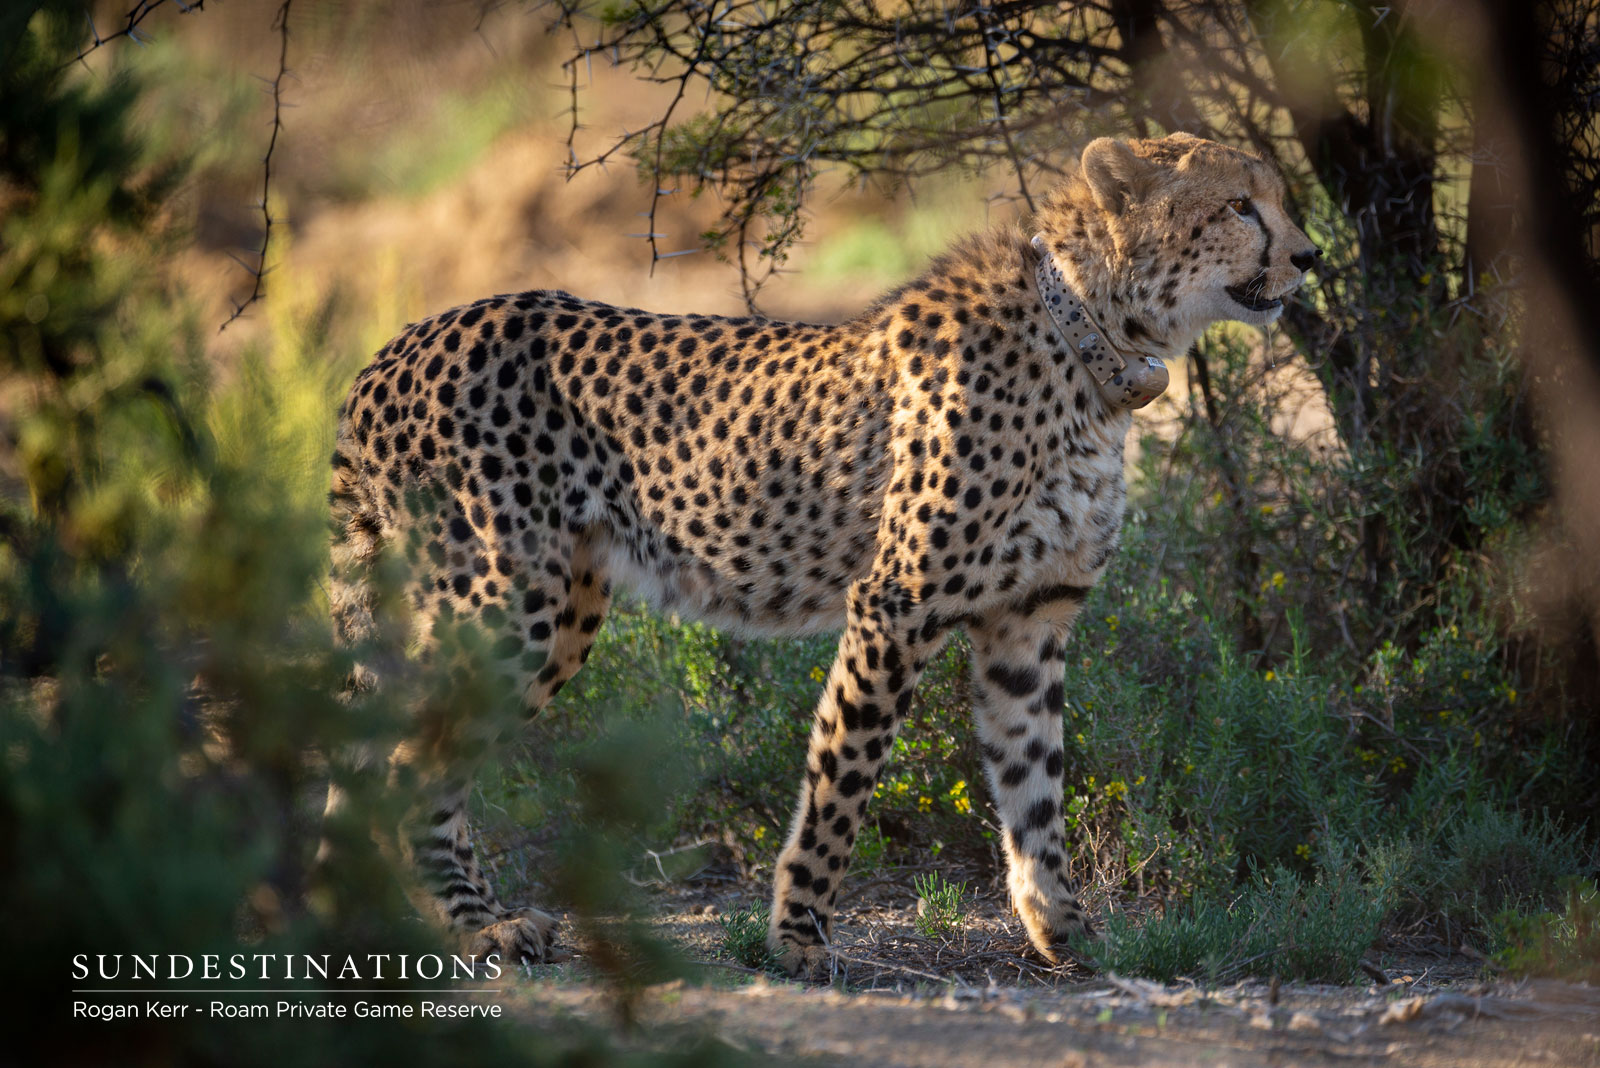 Cheetah at Roam Private Game Reserve